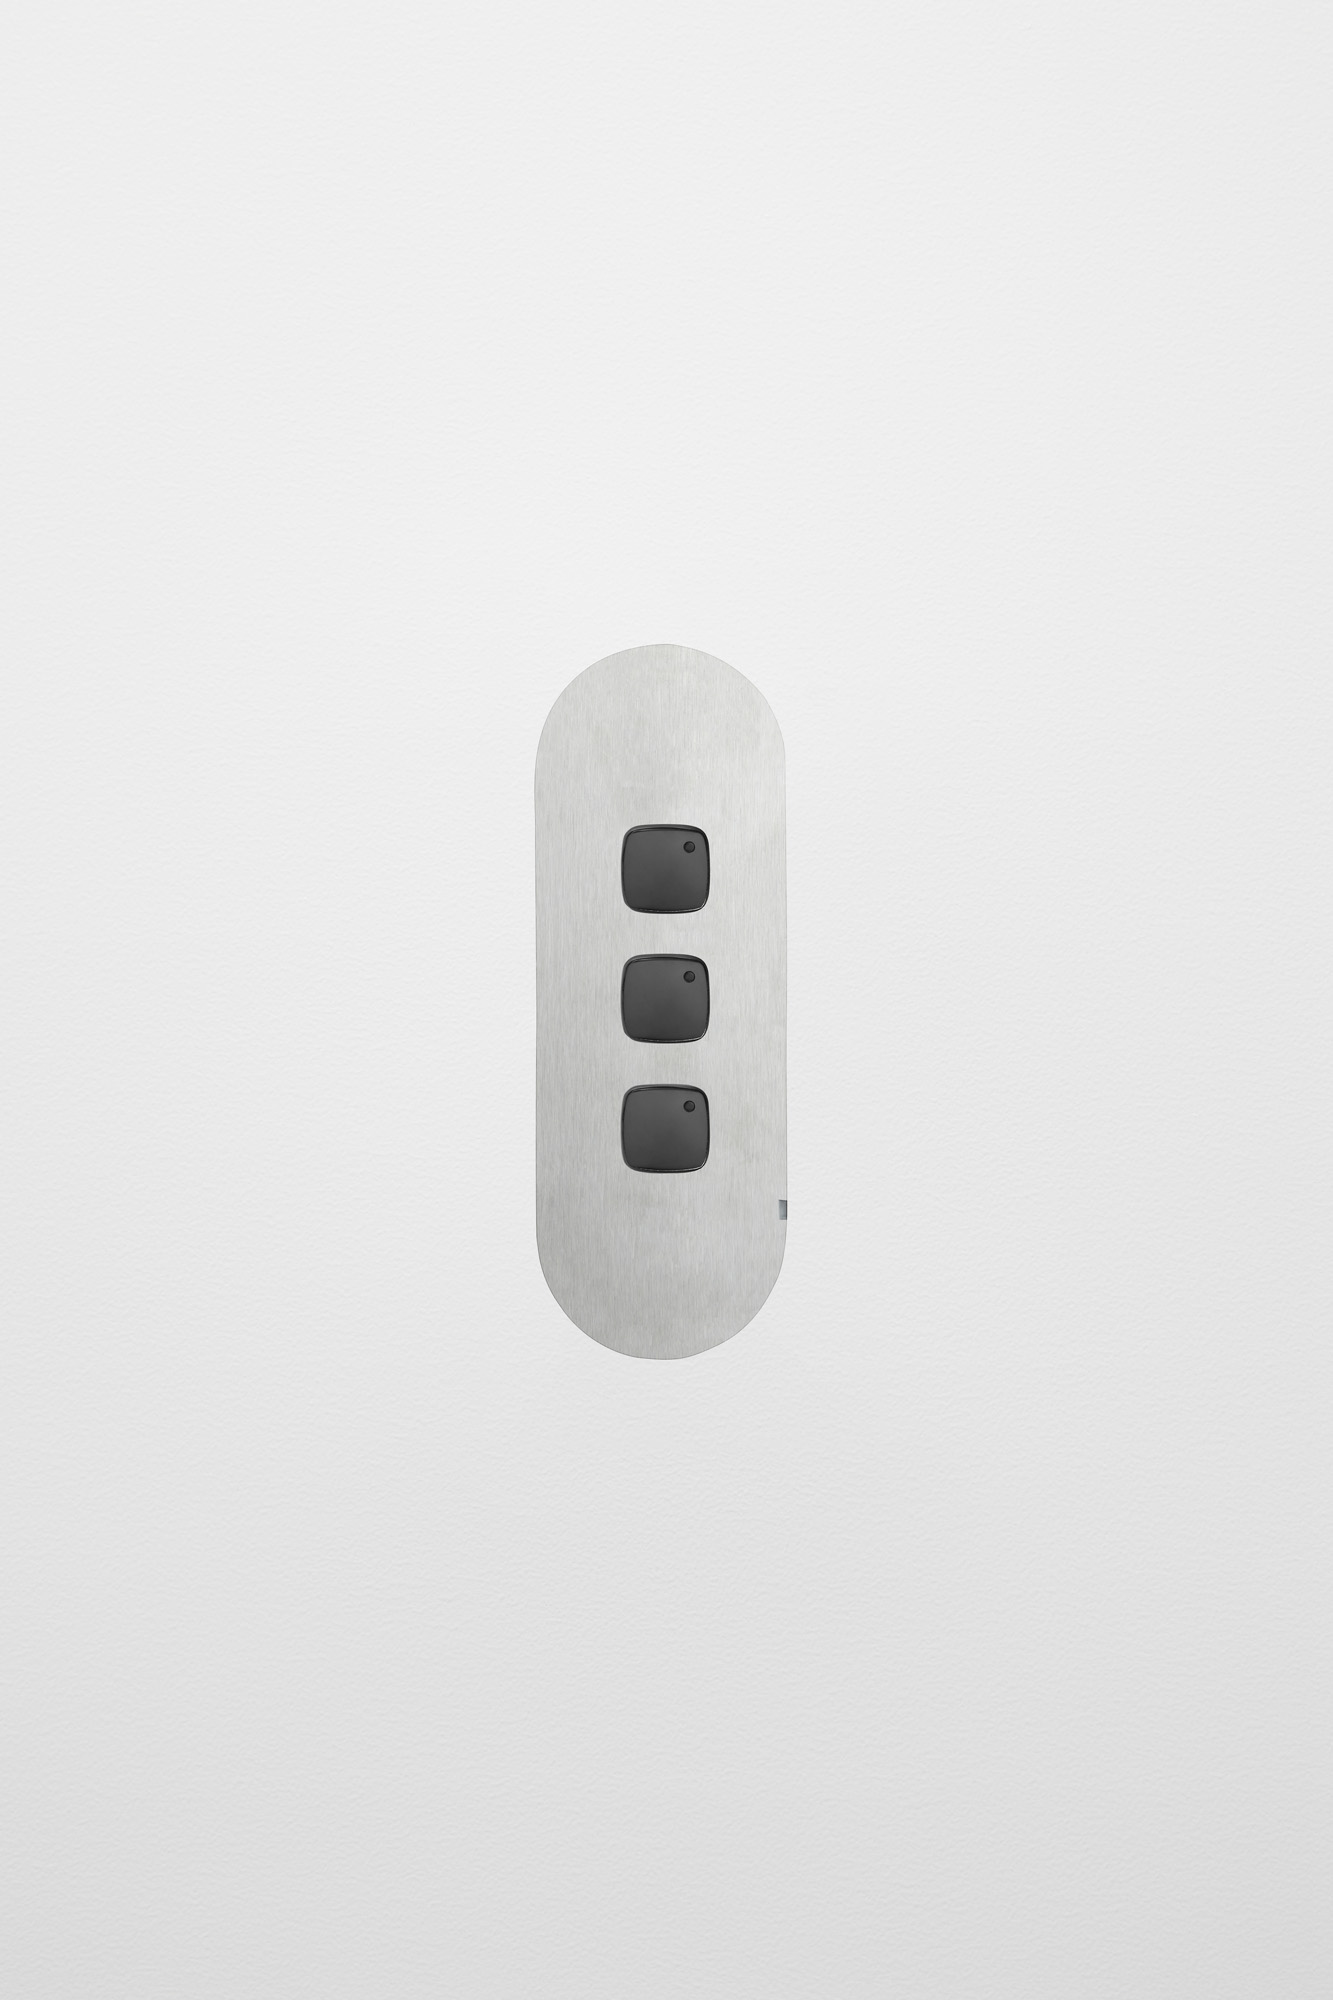 Three_Gang_Switch_Stainless_Steel_Black_Button_White_Board.jpg